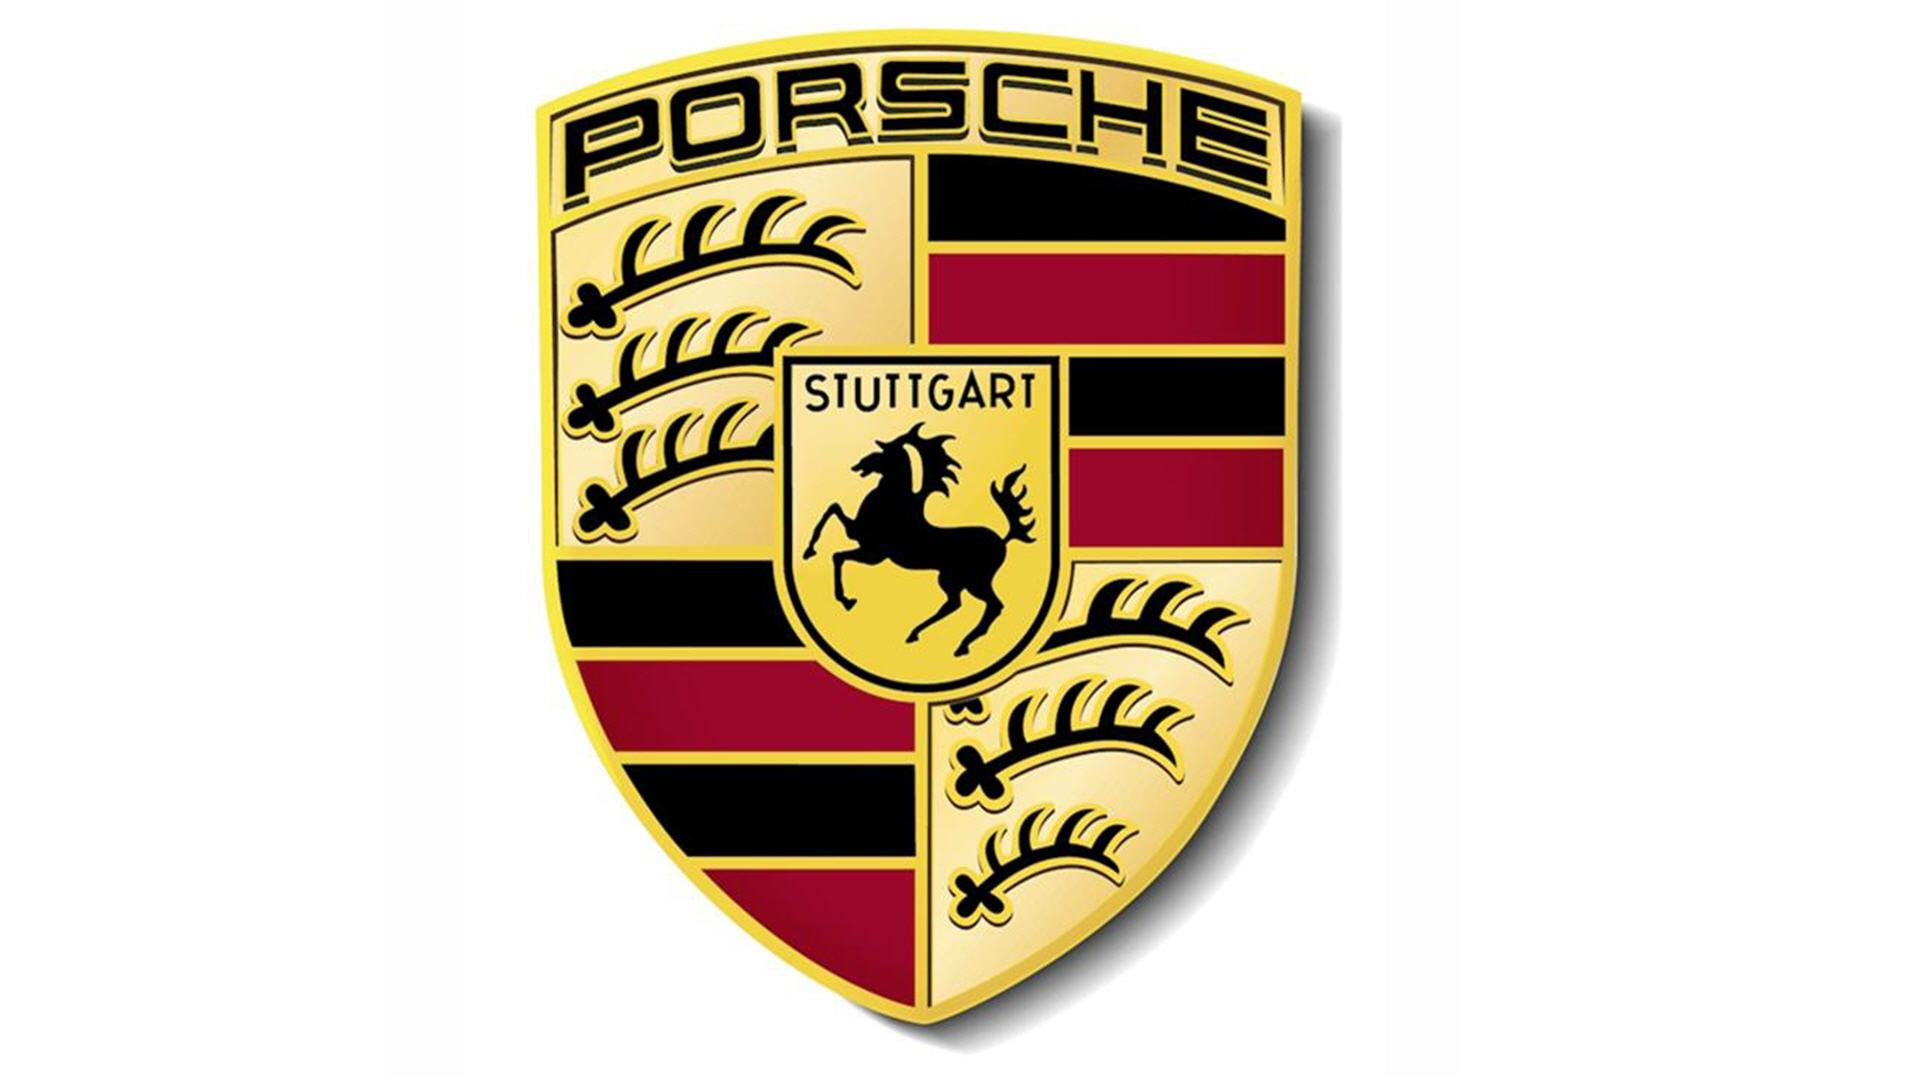 porsche logo wallpapers pictures images. Black Bedroom Furniture Sets. Home Design Ideas